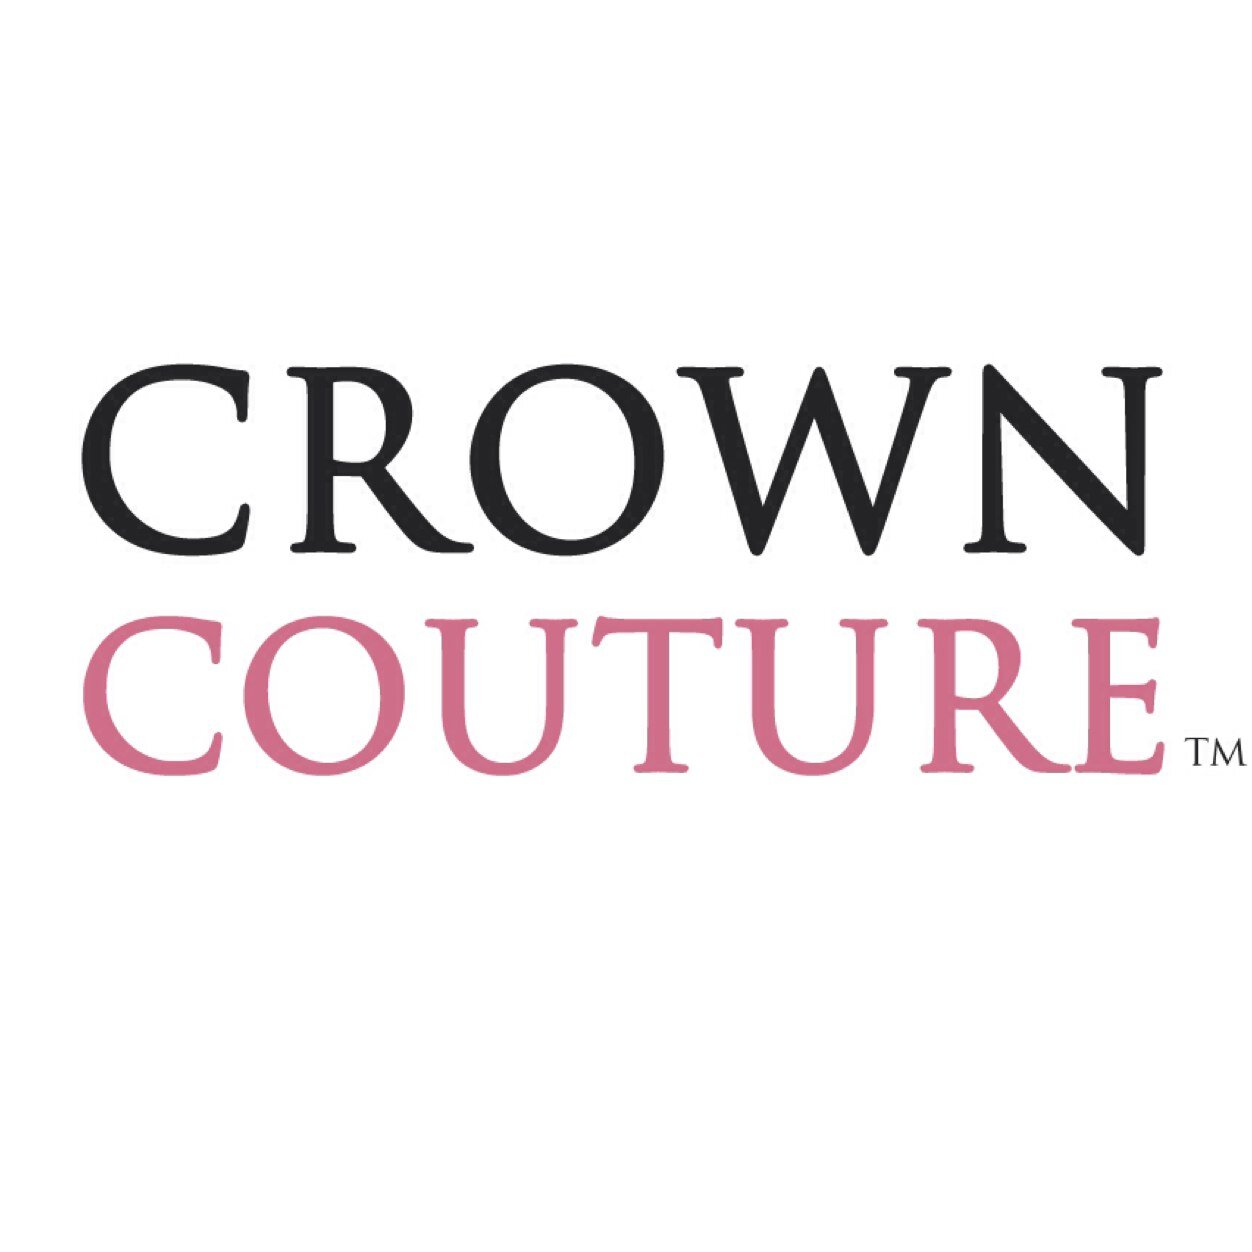 Crowncouture On Twitter Check Out Our Beautiful Client Sarahs